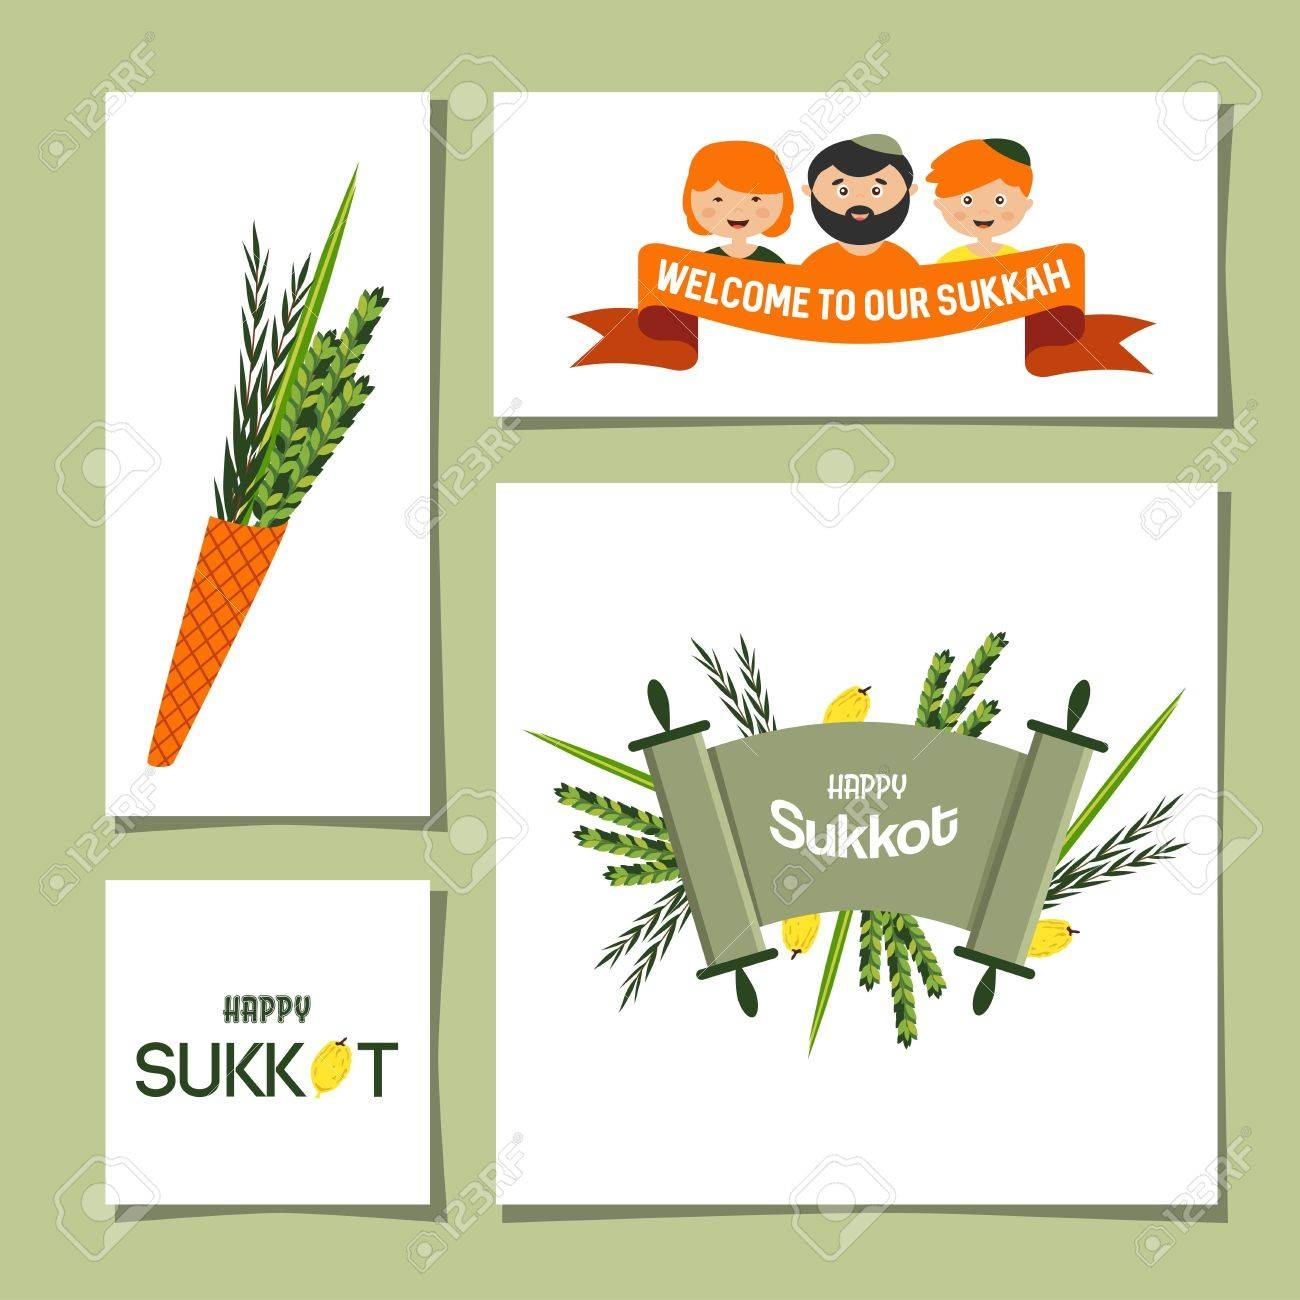 Set of greeting cards for jewish holiday sukkot royalty free set of greeting cards for jewish holiday sukkot stock vector 61457724 m4hsunfo